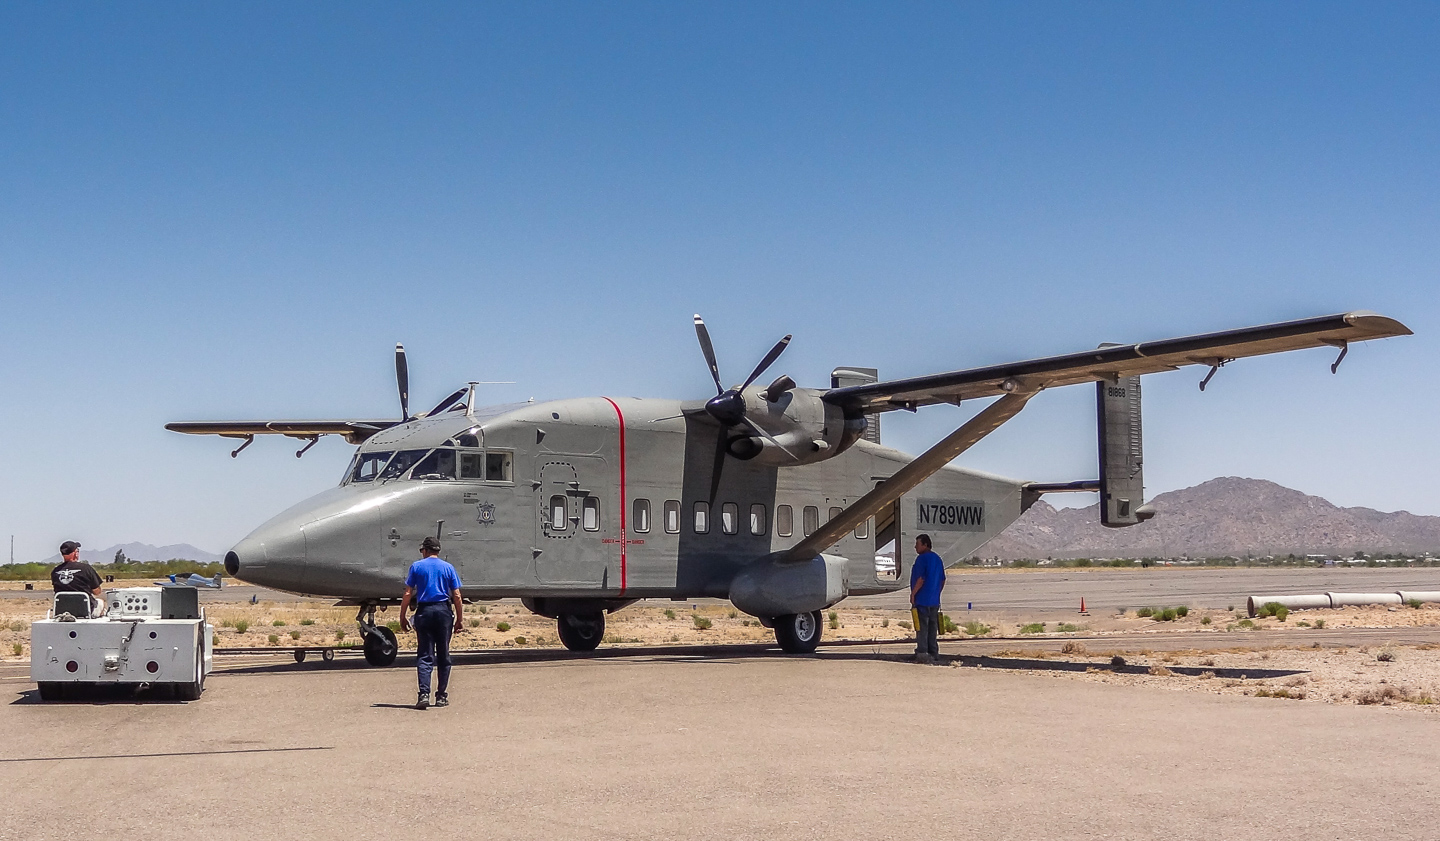 A Shorts C-23B Sherpa arriving in Casa Grande, Arizona for maintenance at GossHawk Unlimited. The aircraft are on the US civil registry, but used in Special Forces training. (photo via Lindsey Goss)